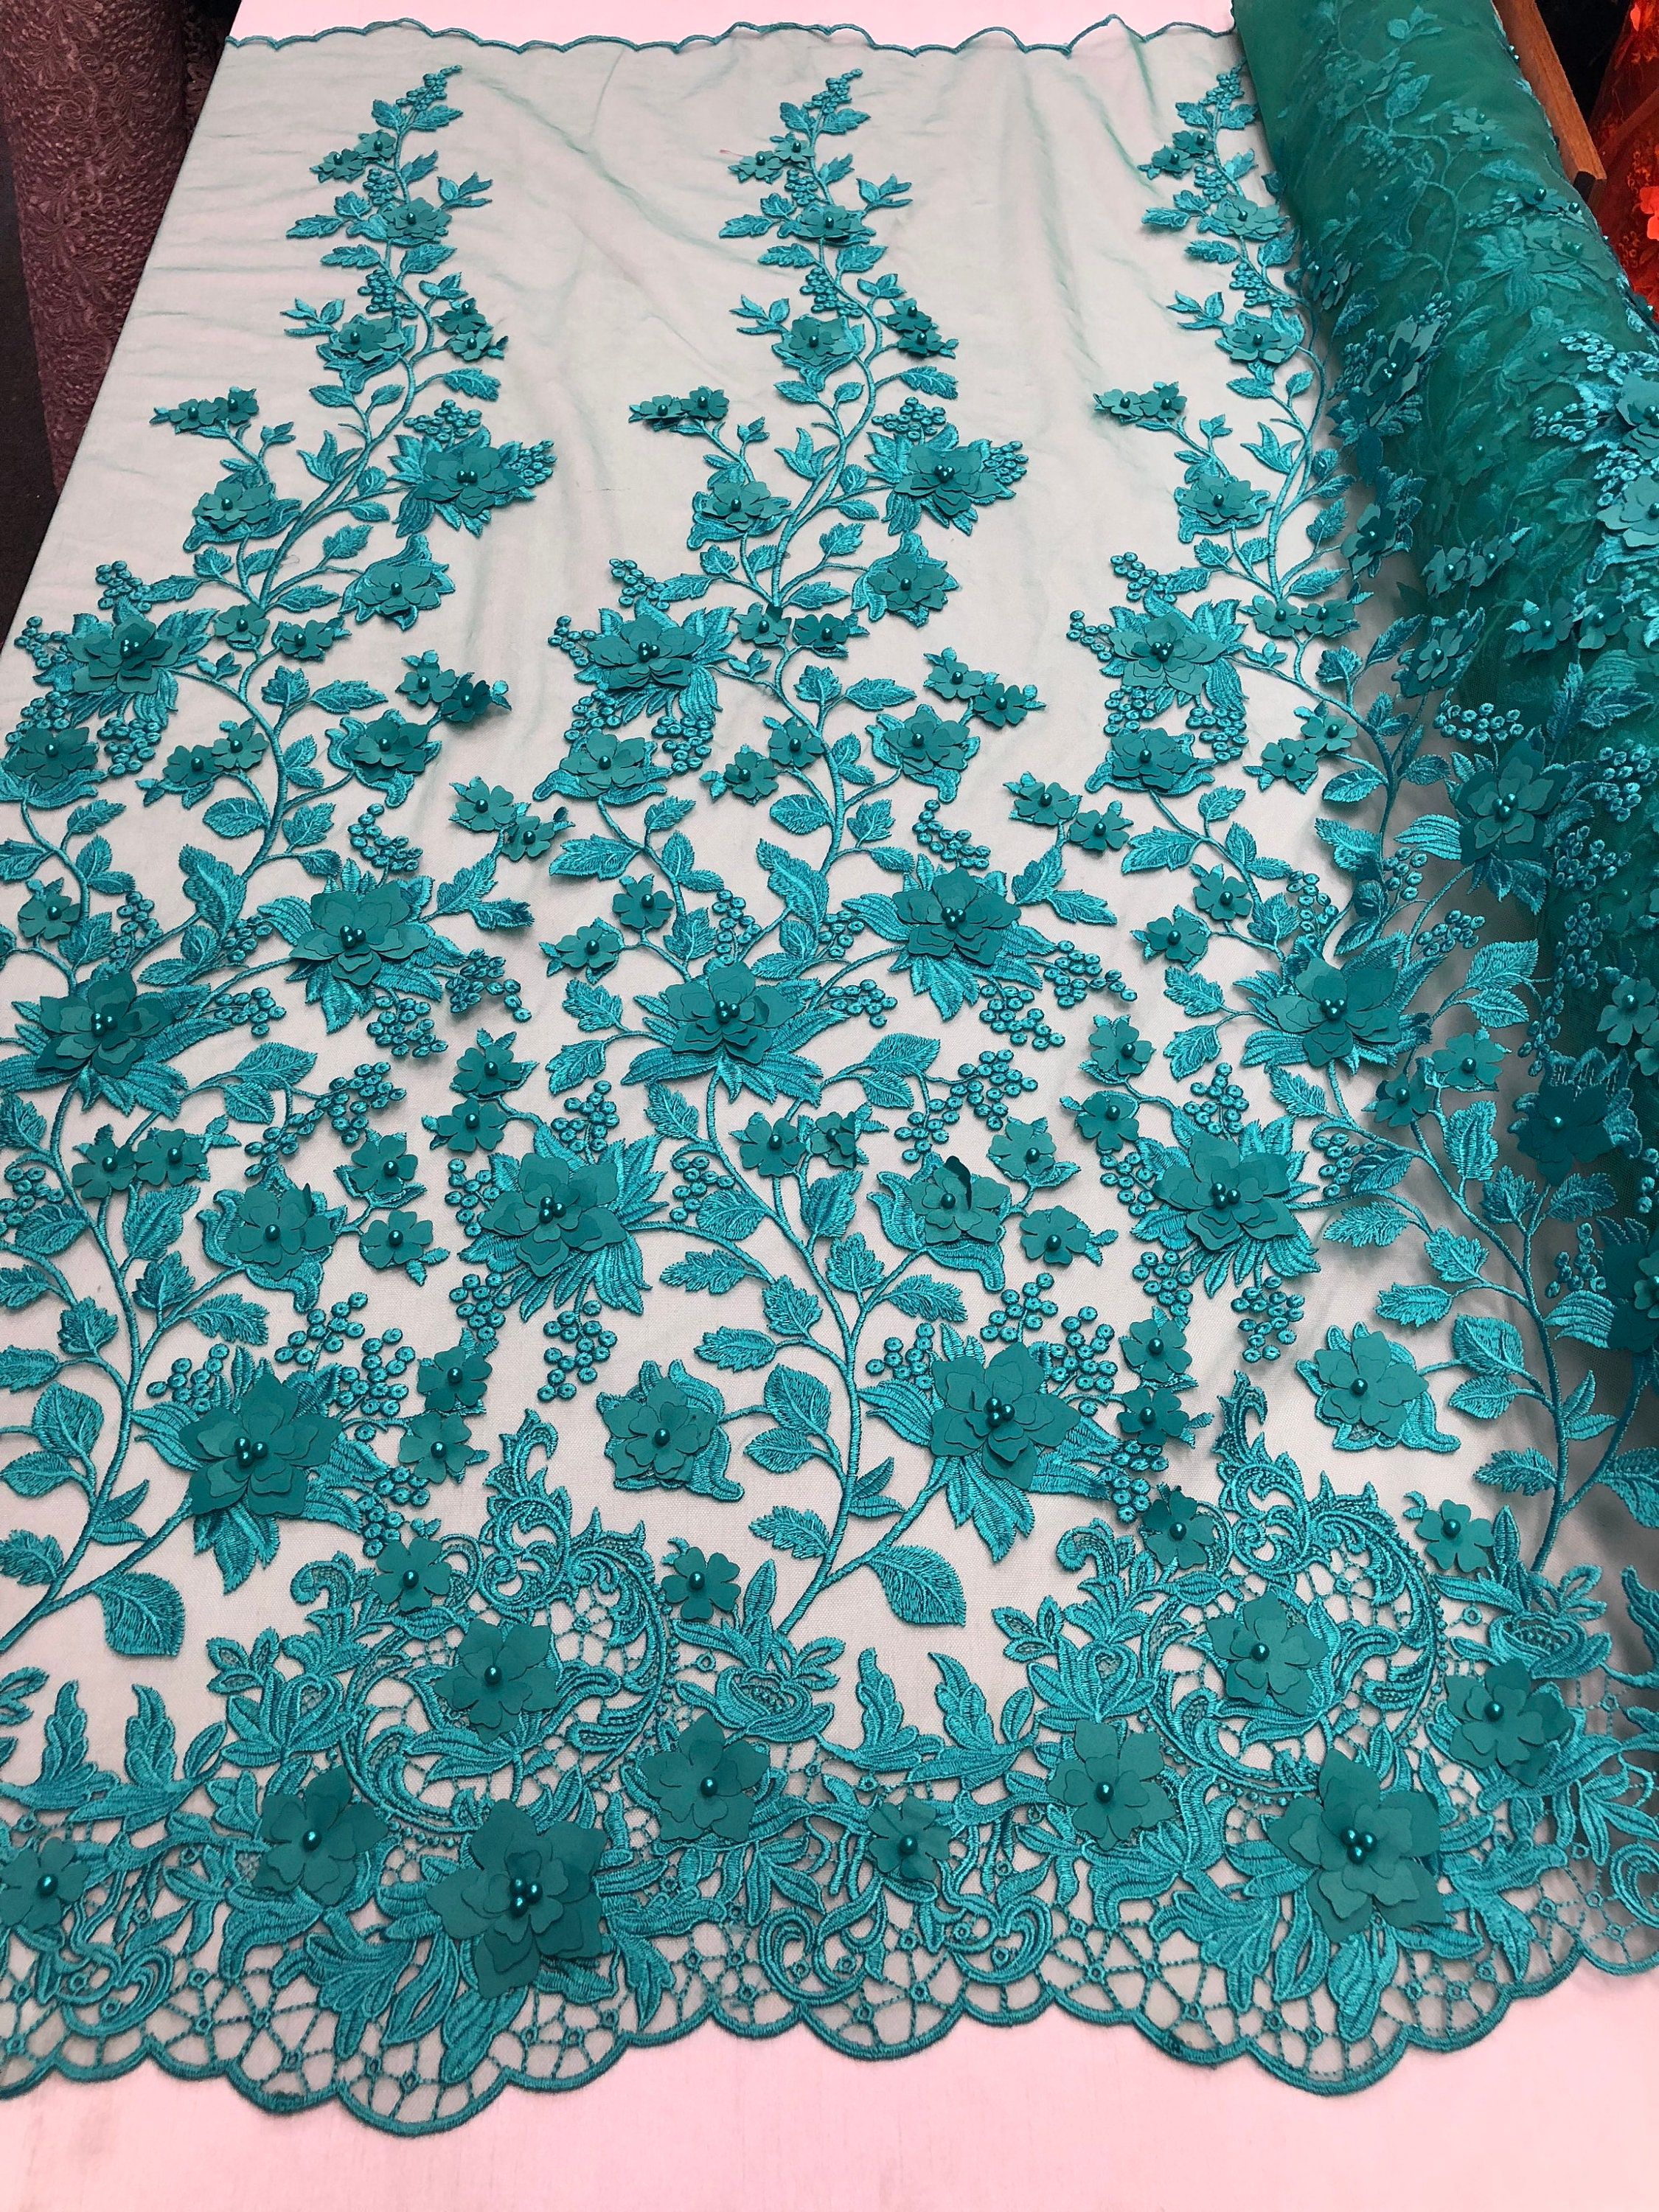 Wedding Pearls Aqua Flower Mesh Dress /& Birdal Veil By The Yard Lace fabric